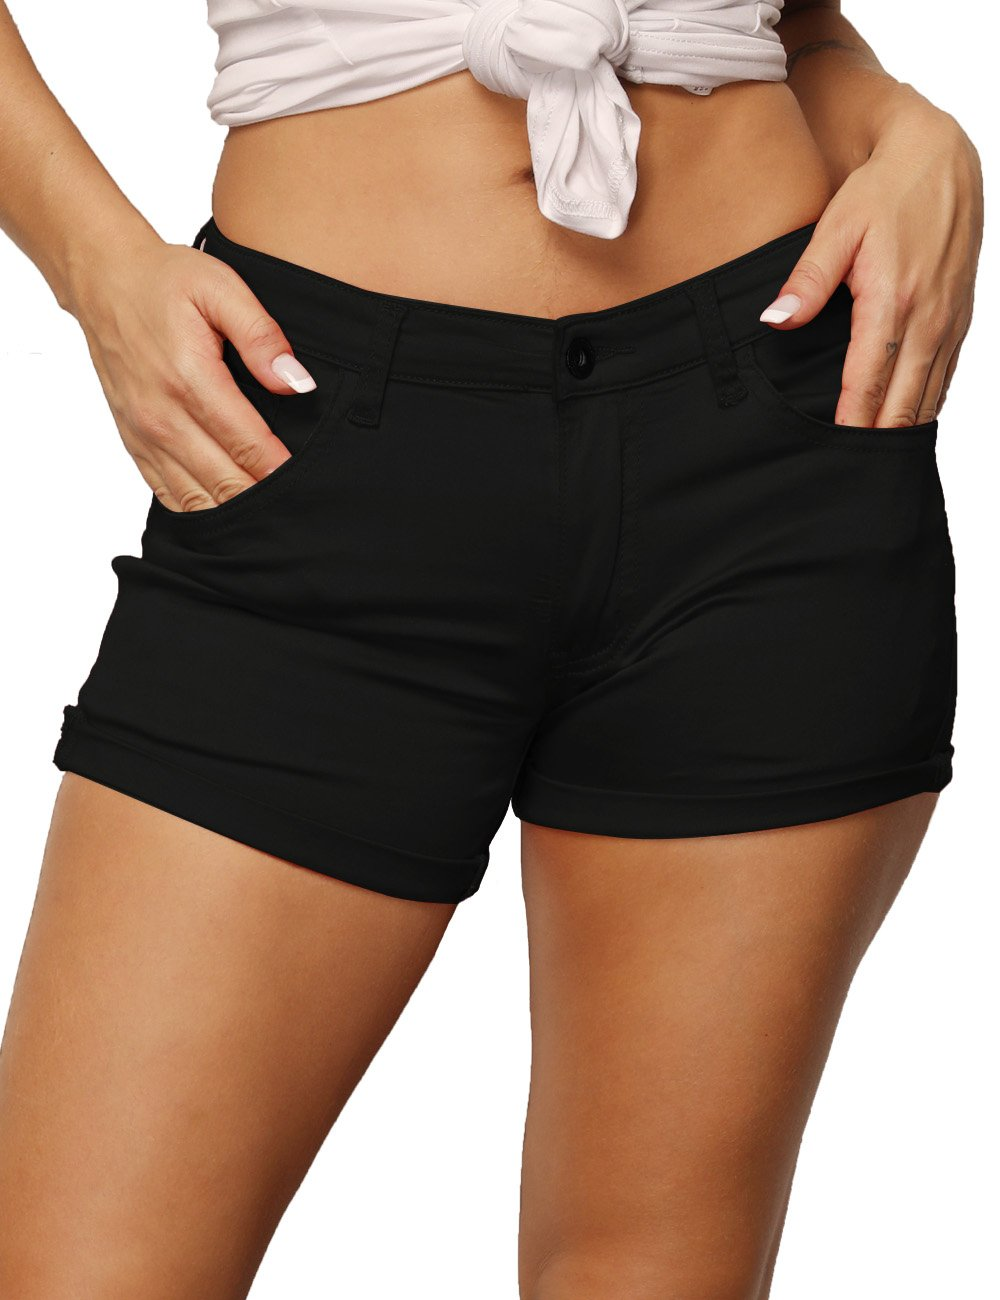 Haola Women's Casual Stretchy Shorts Juniors Summer Mid-Rise Shorts Black M